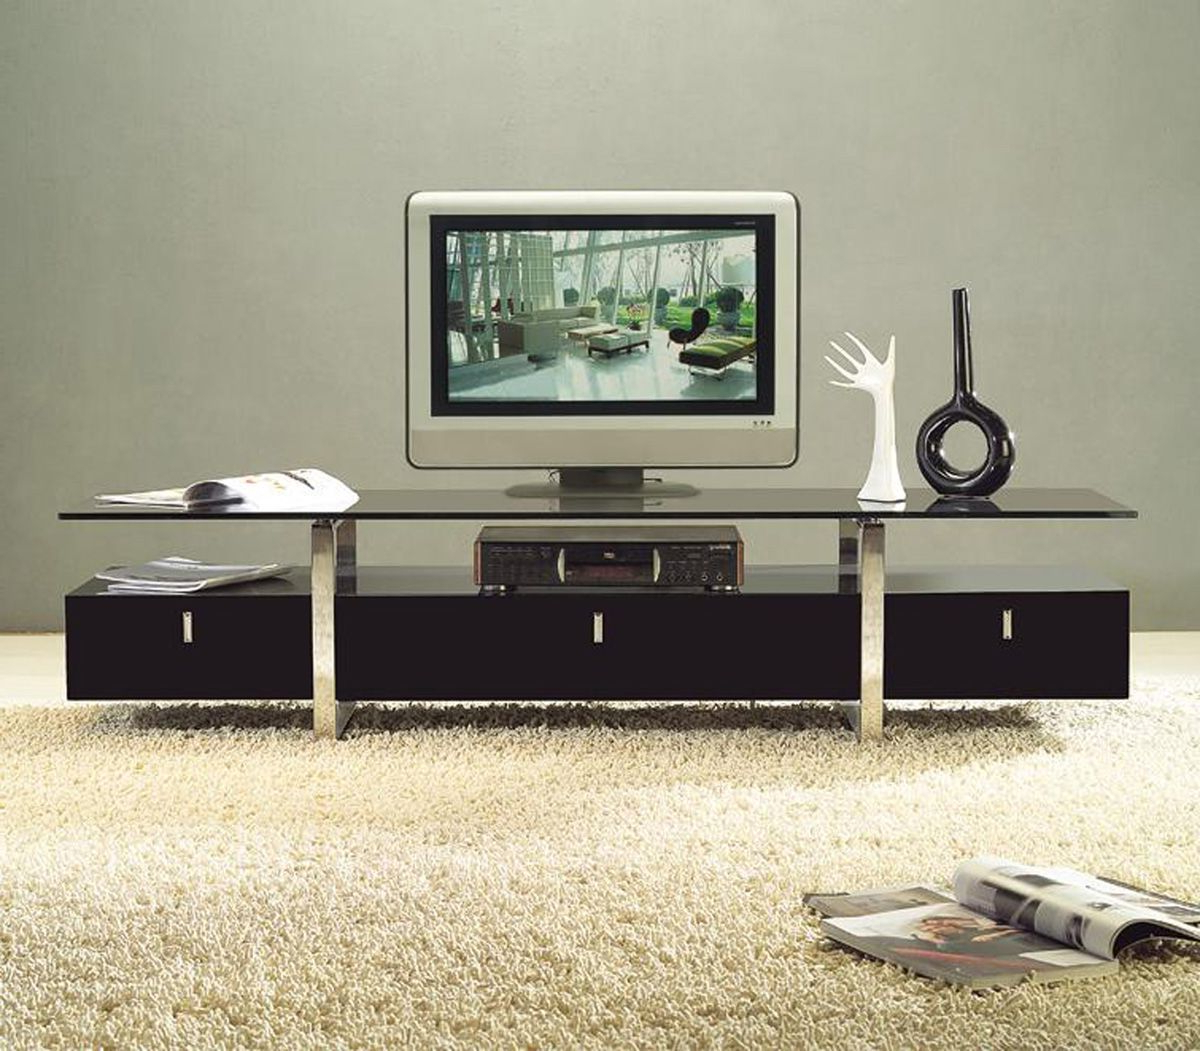 Modern Tv Stands For Flat Screens Inside Most Popular Clear Lined Design Contemporary Brown Color Tv Stand With Glass Top (View 9 of 20)